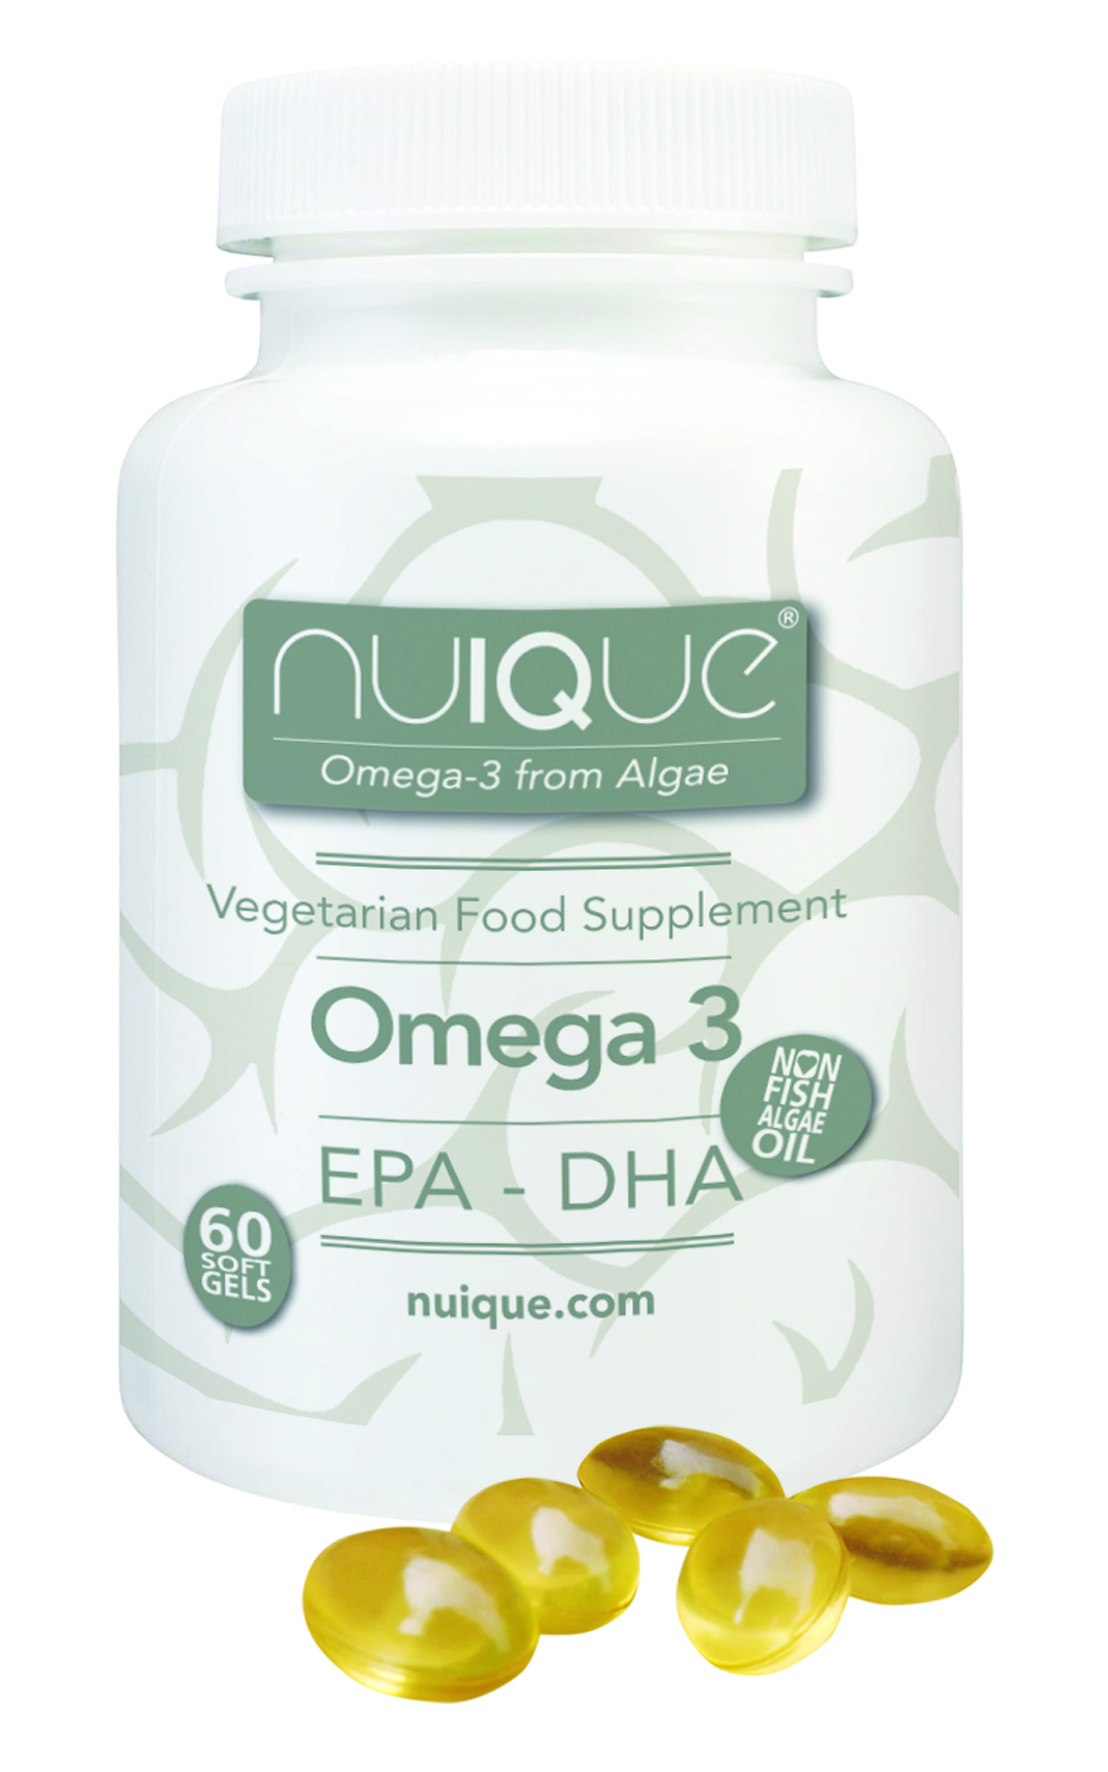 Nuique - Omega 3 (60 caps)